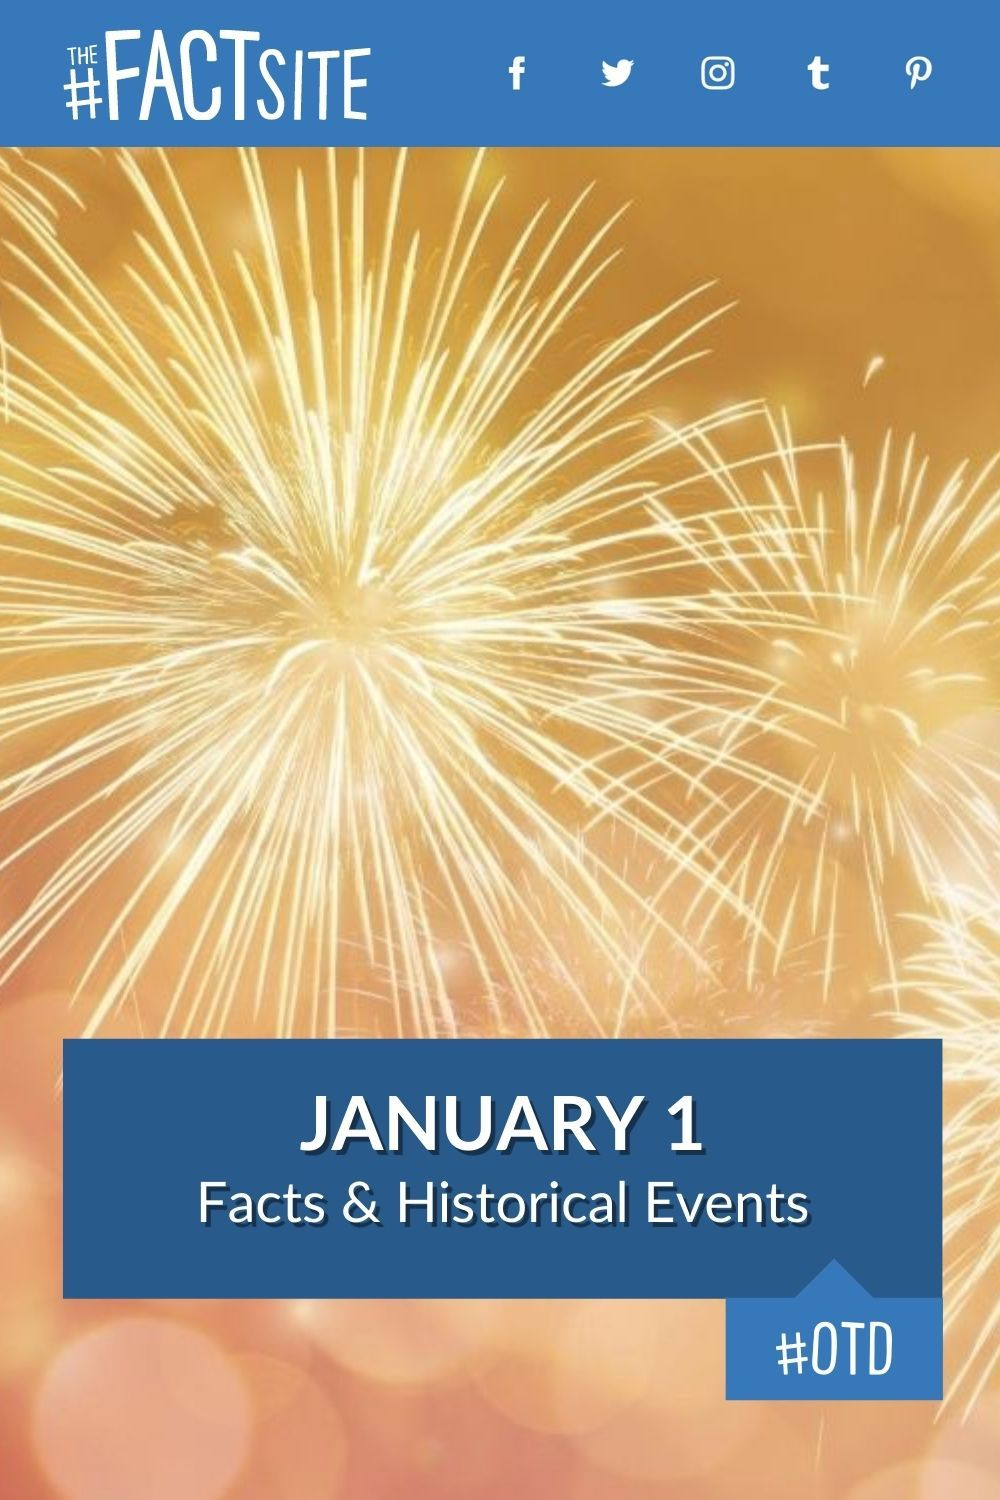 Facts & Historic Events That Happened on January 1